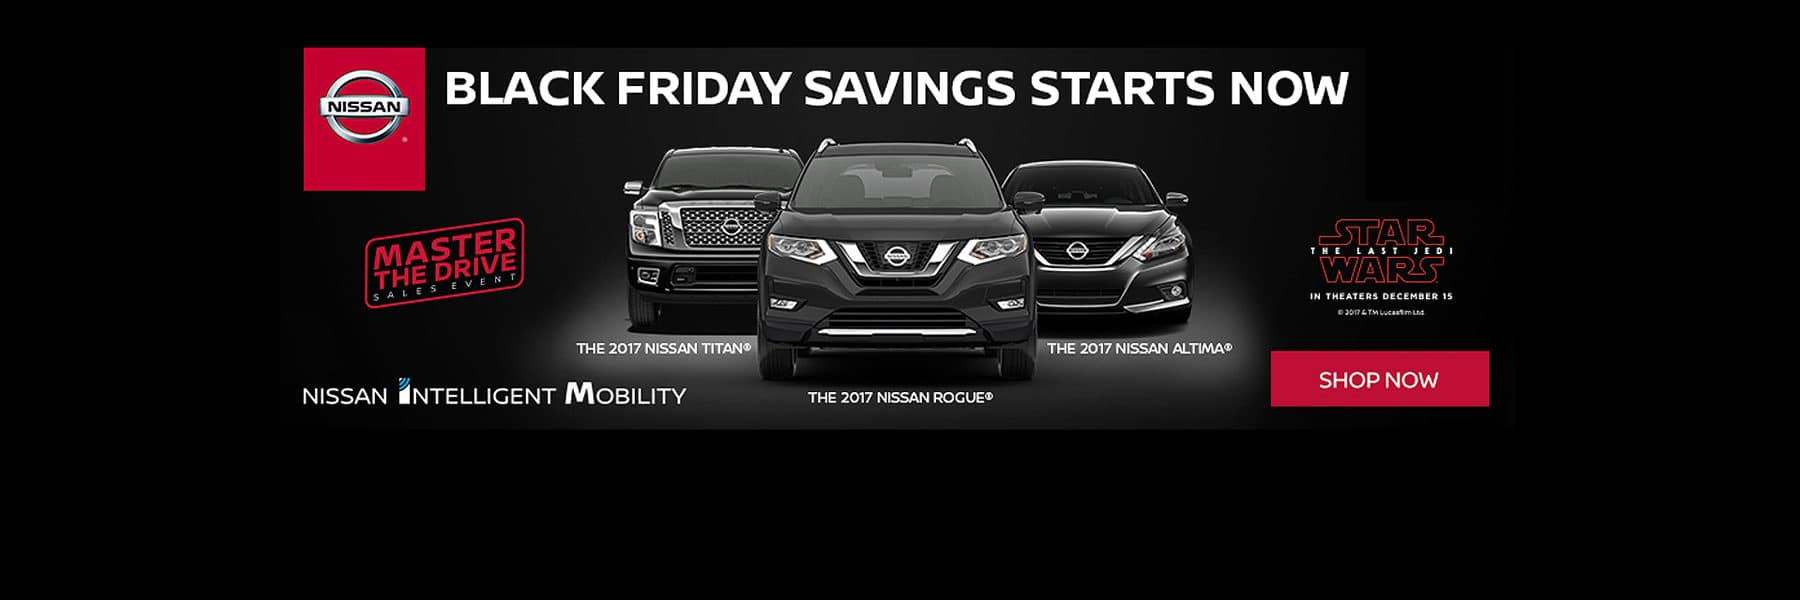 Save Big with Berman Nissan of Chicago's Master the Drive Sales Event!